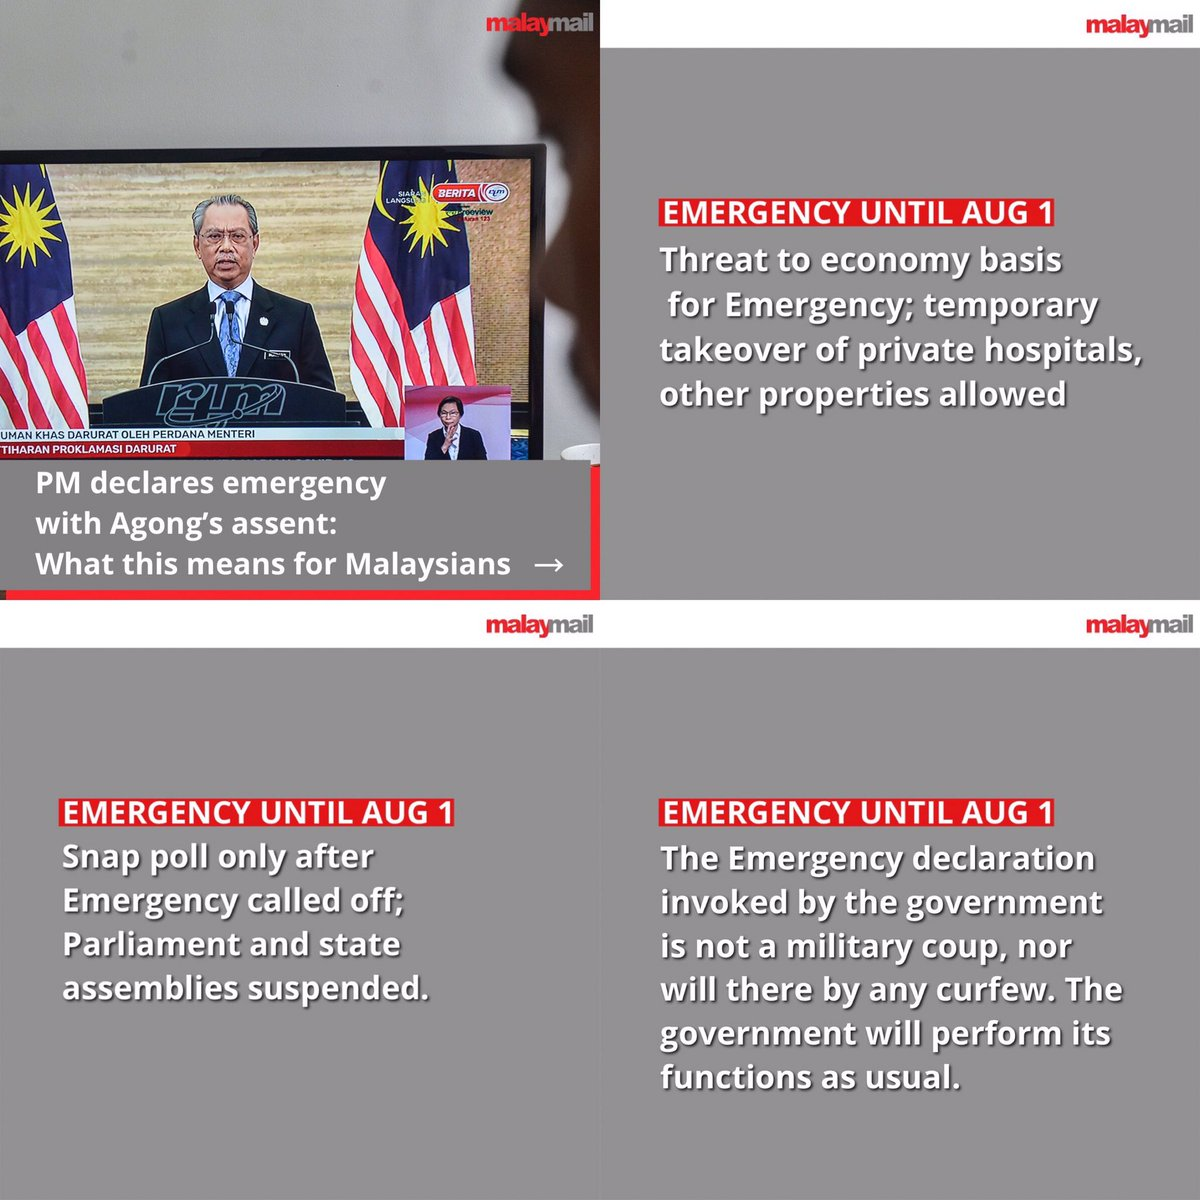 """What is the meaning of a """"State of Emergency"""" in #Malaysia? It is all a cover up for a political move.   Fun fact - @MuhyiddinYassin doesn't have the majority in parliament so this is how he retains power. Get the picture yet?   Sickening... #darurat #MuhyiddinOut https://t.co/85NHZ63X0v"""